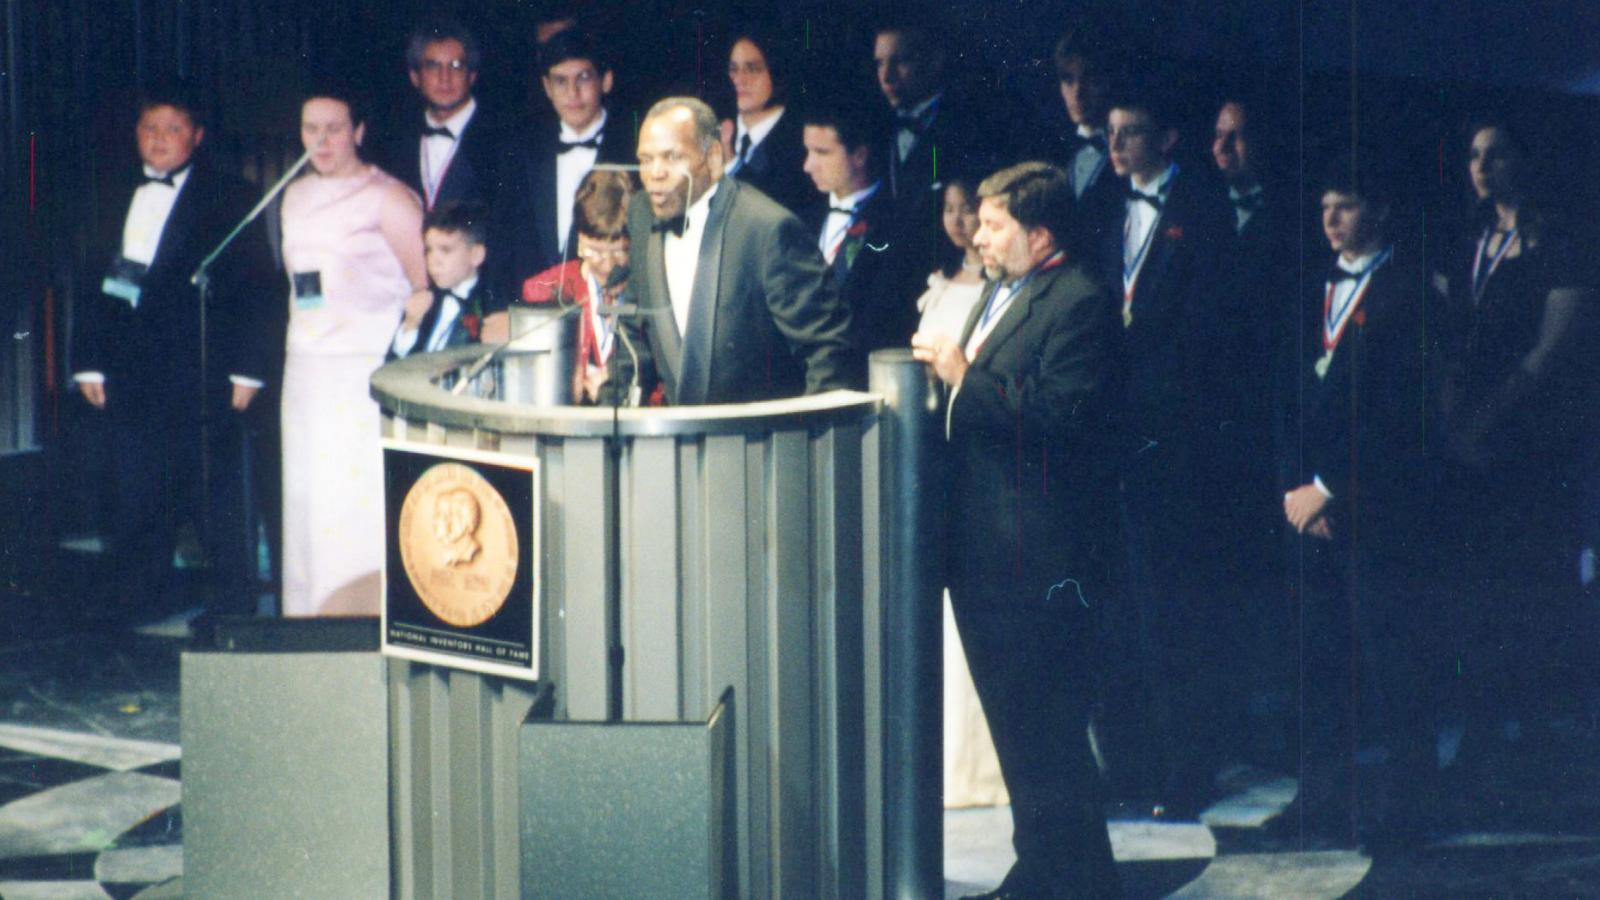 Danny Glover, Steve Wozniak, 2000 Induction of the National Gallery for America's Young Inventors